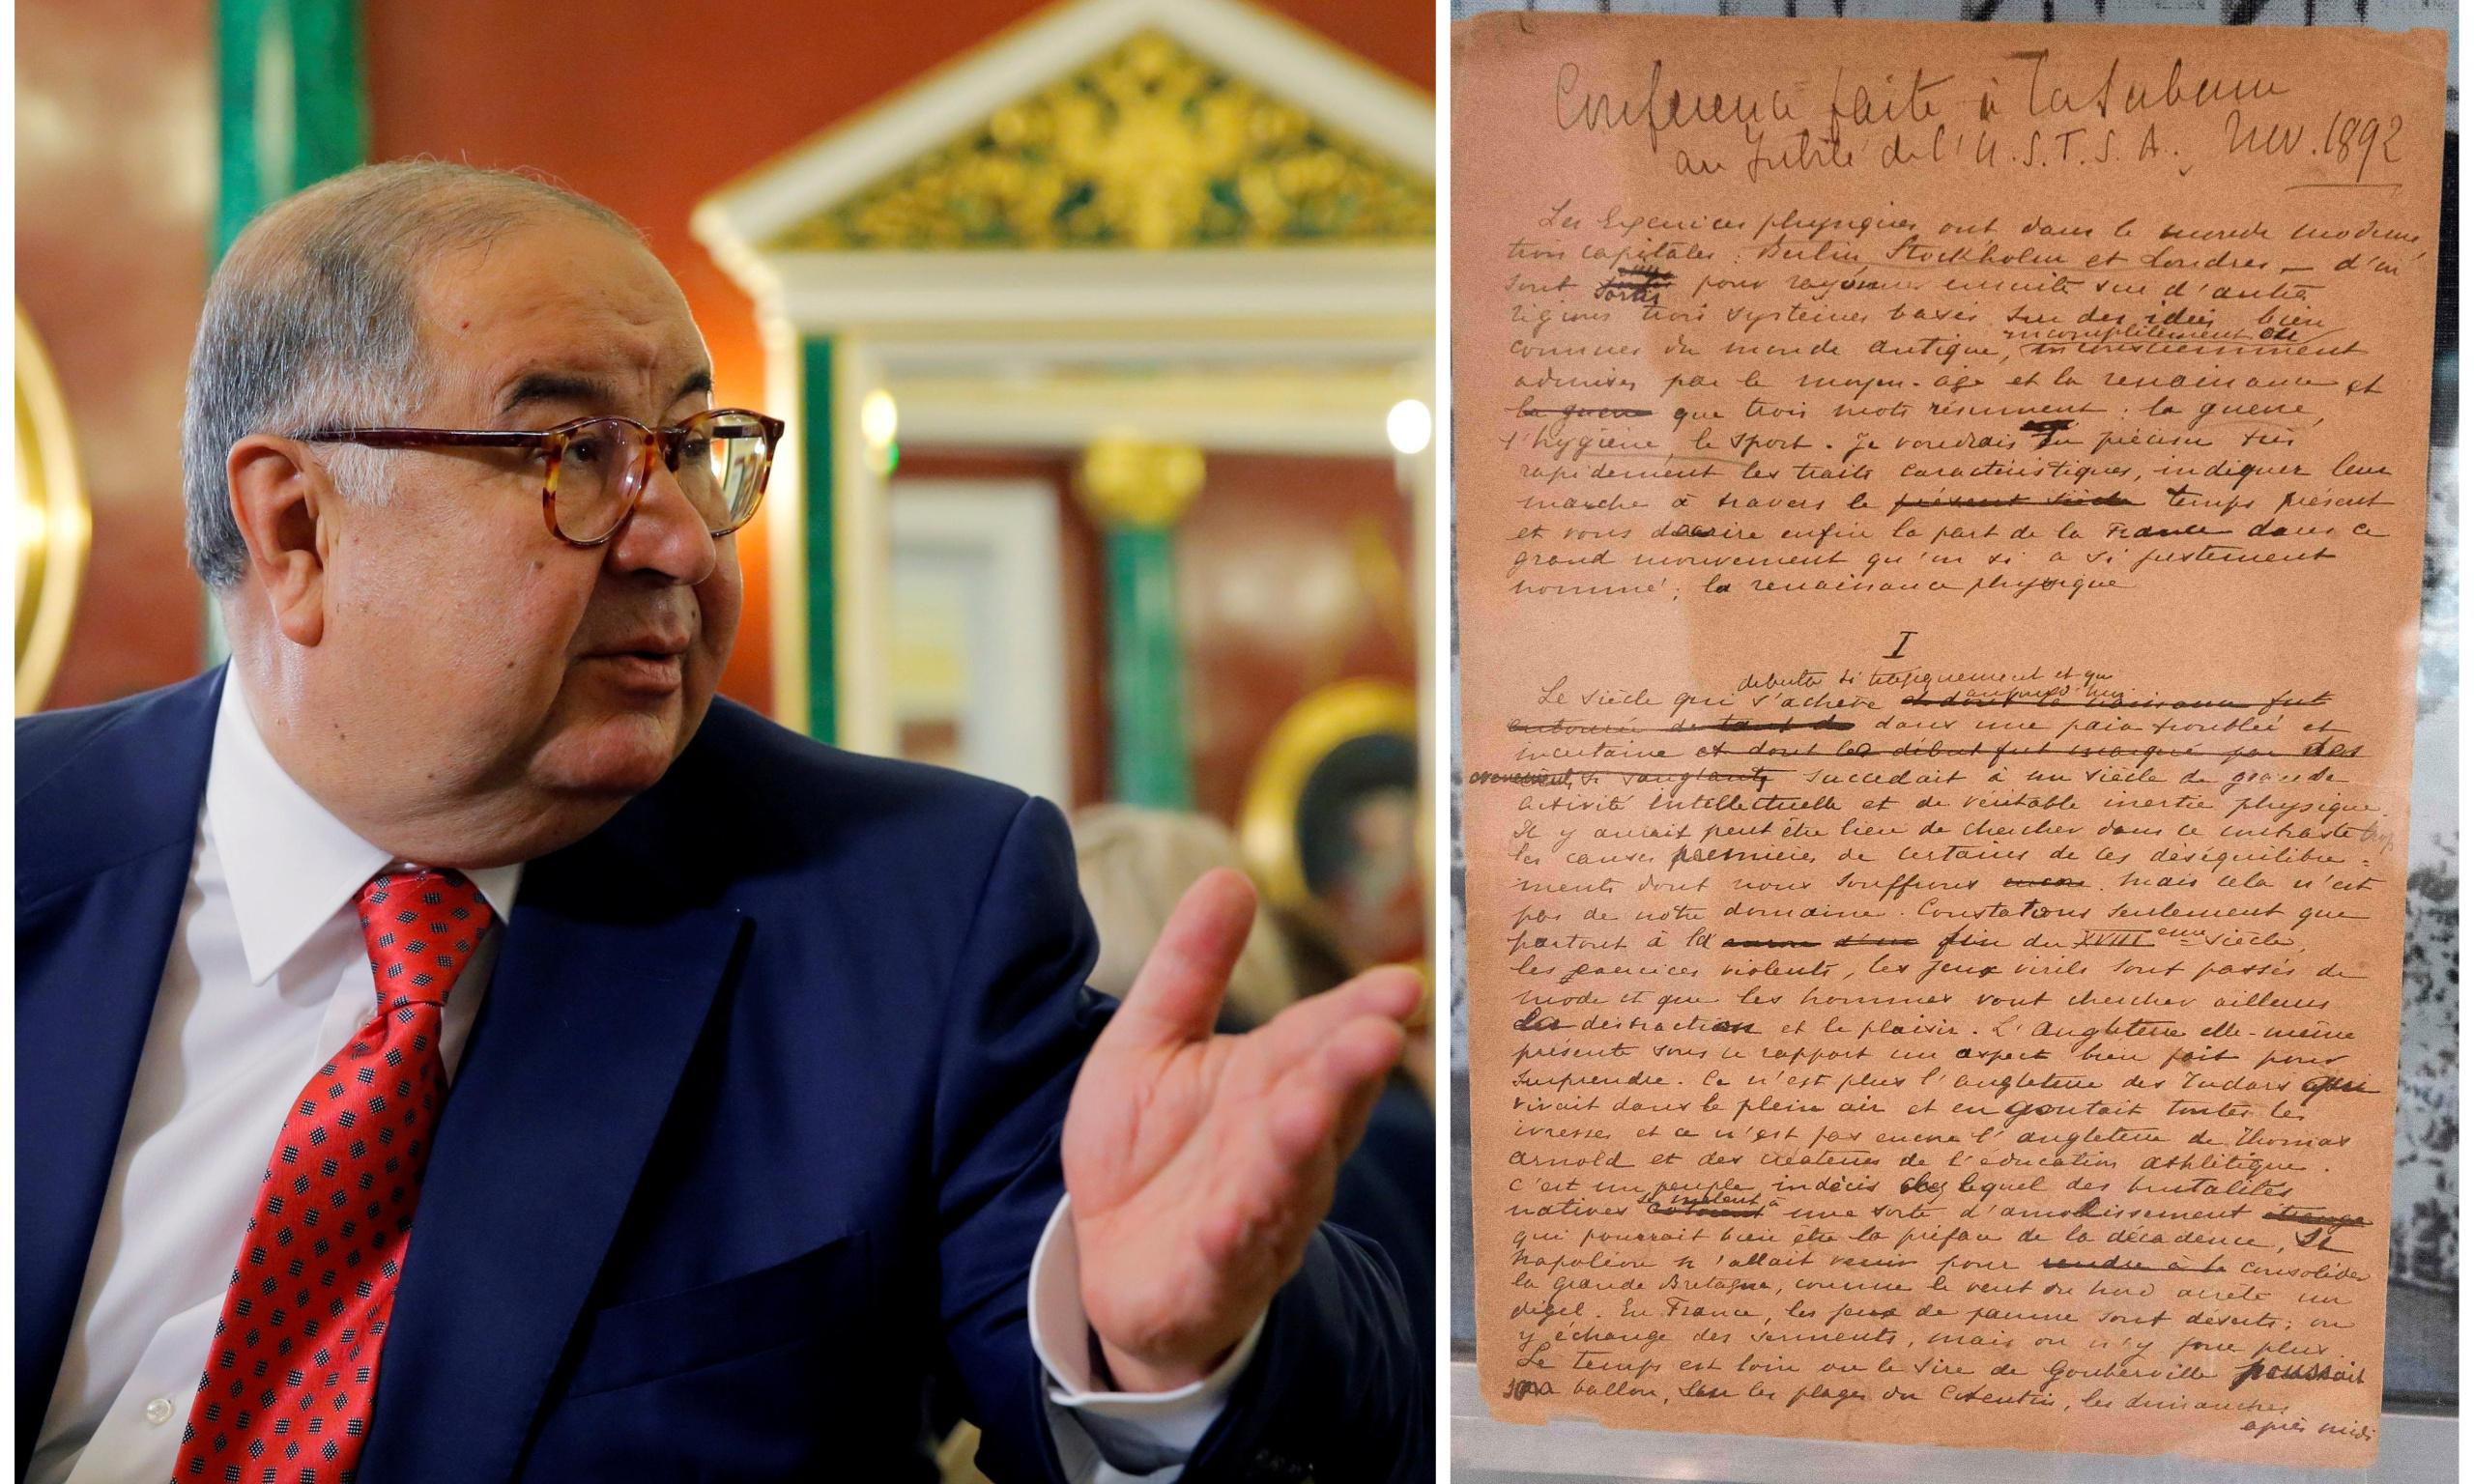 Alisher Usmanov's remedy for love? New love. And a £6.8m Olympic manifesto